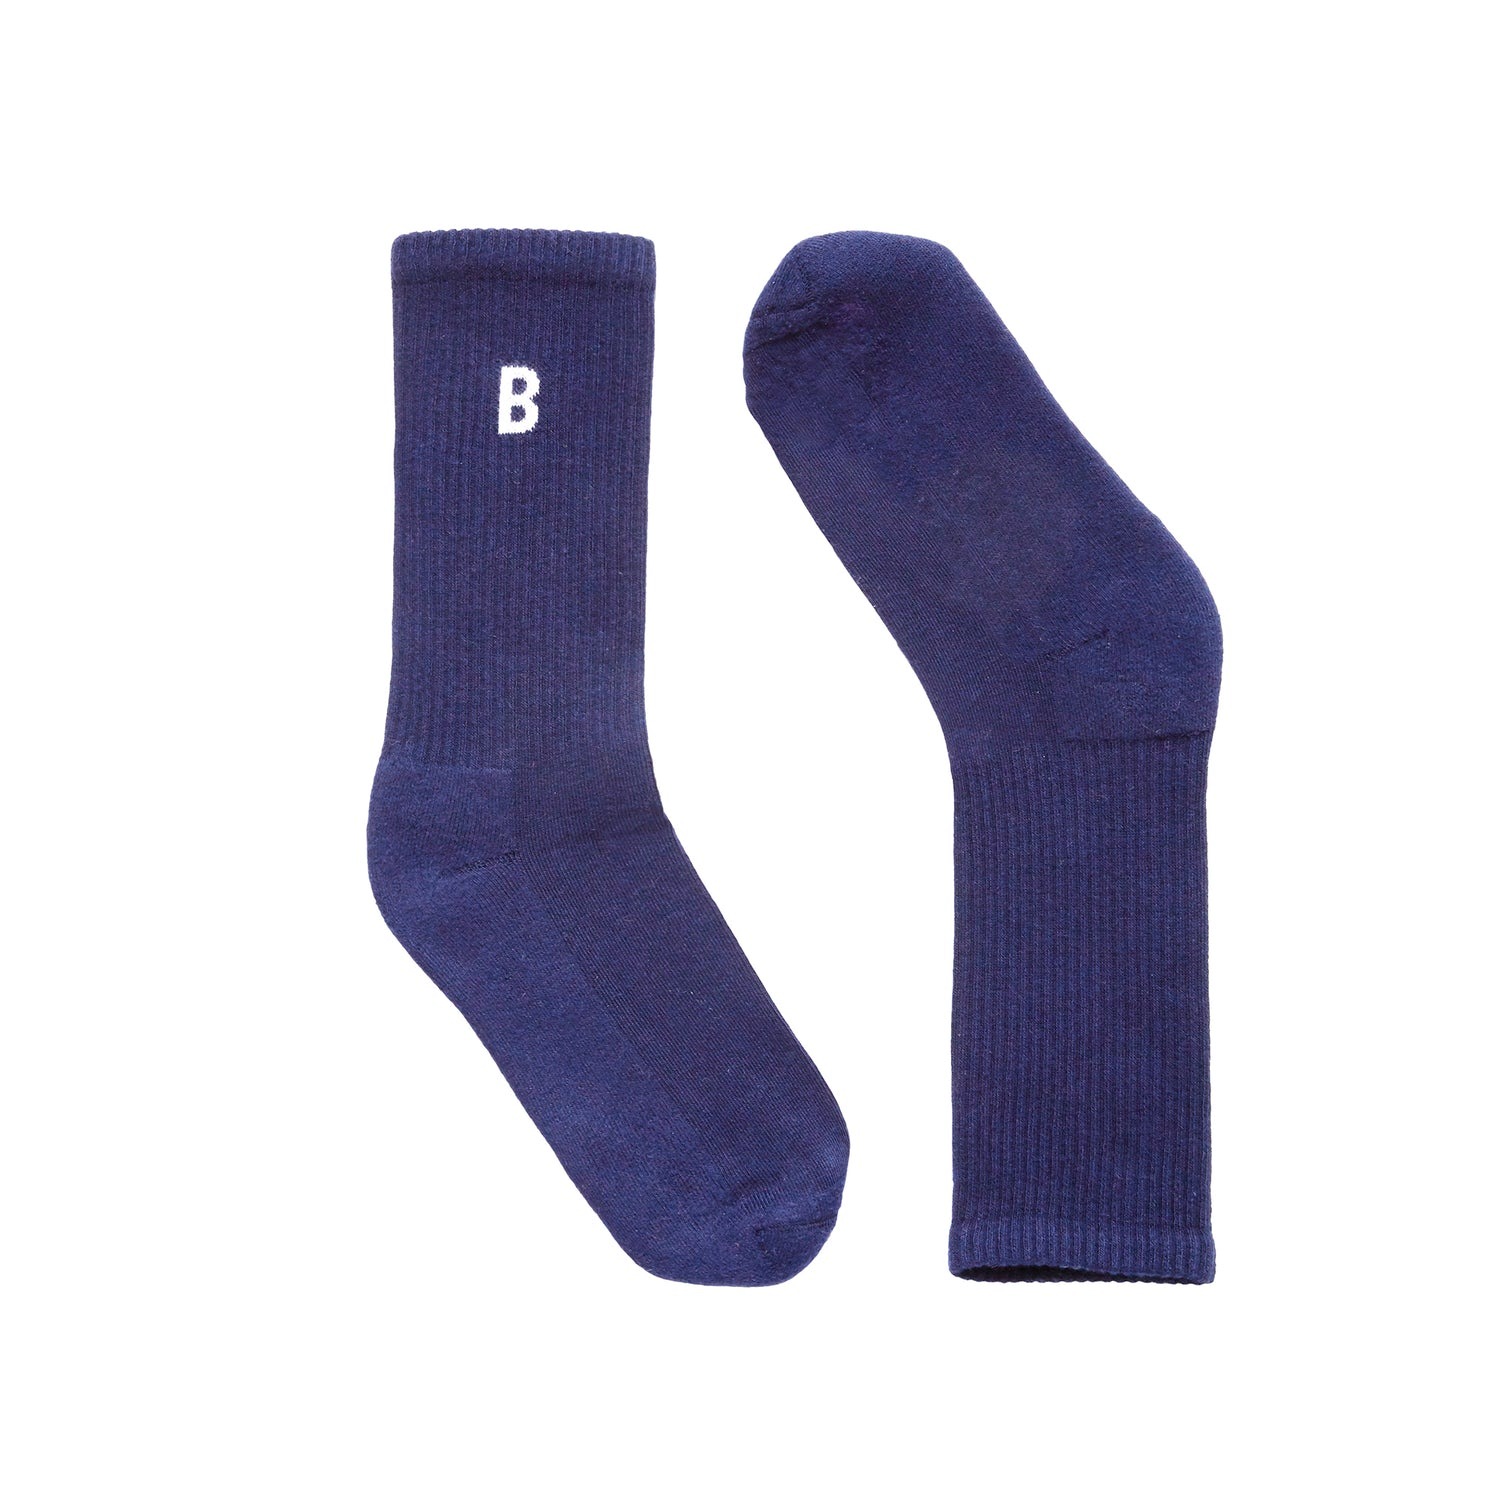 B Sport Navy Socks